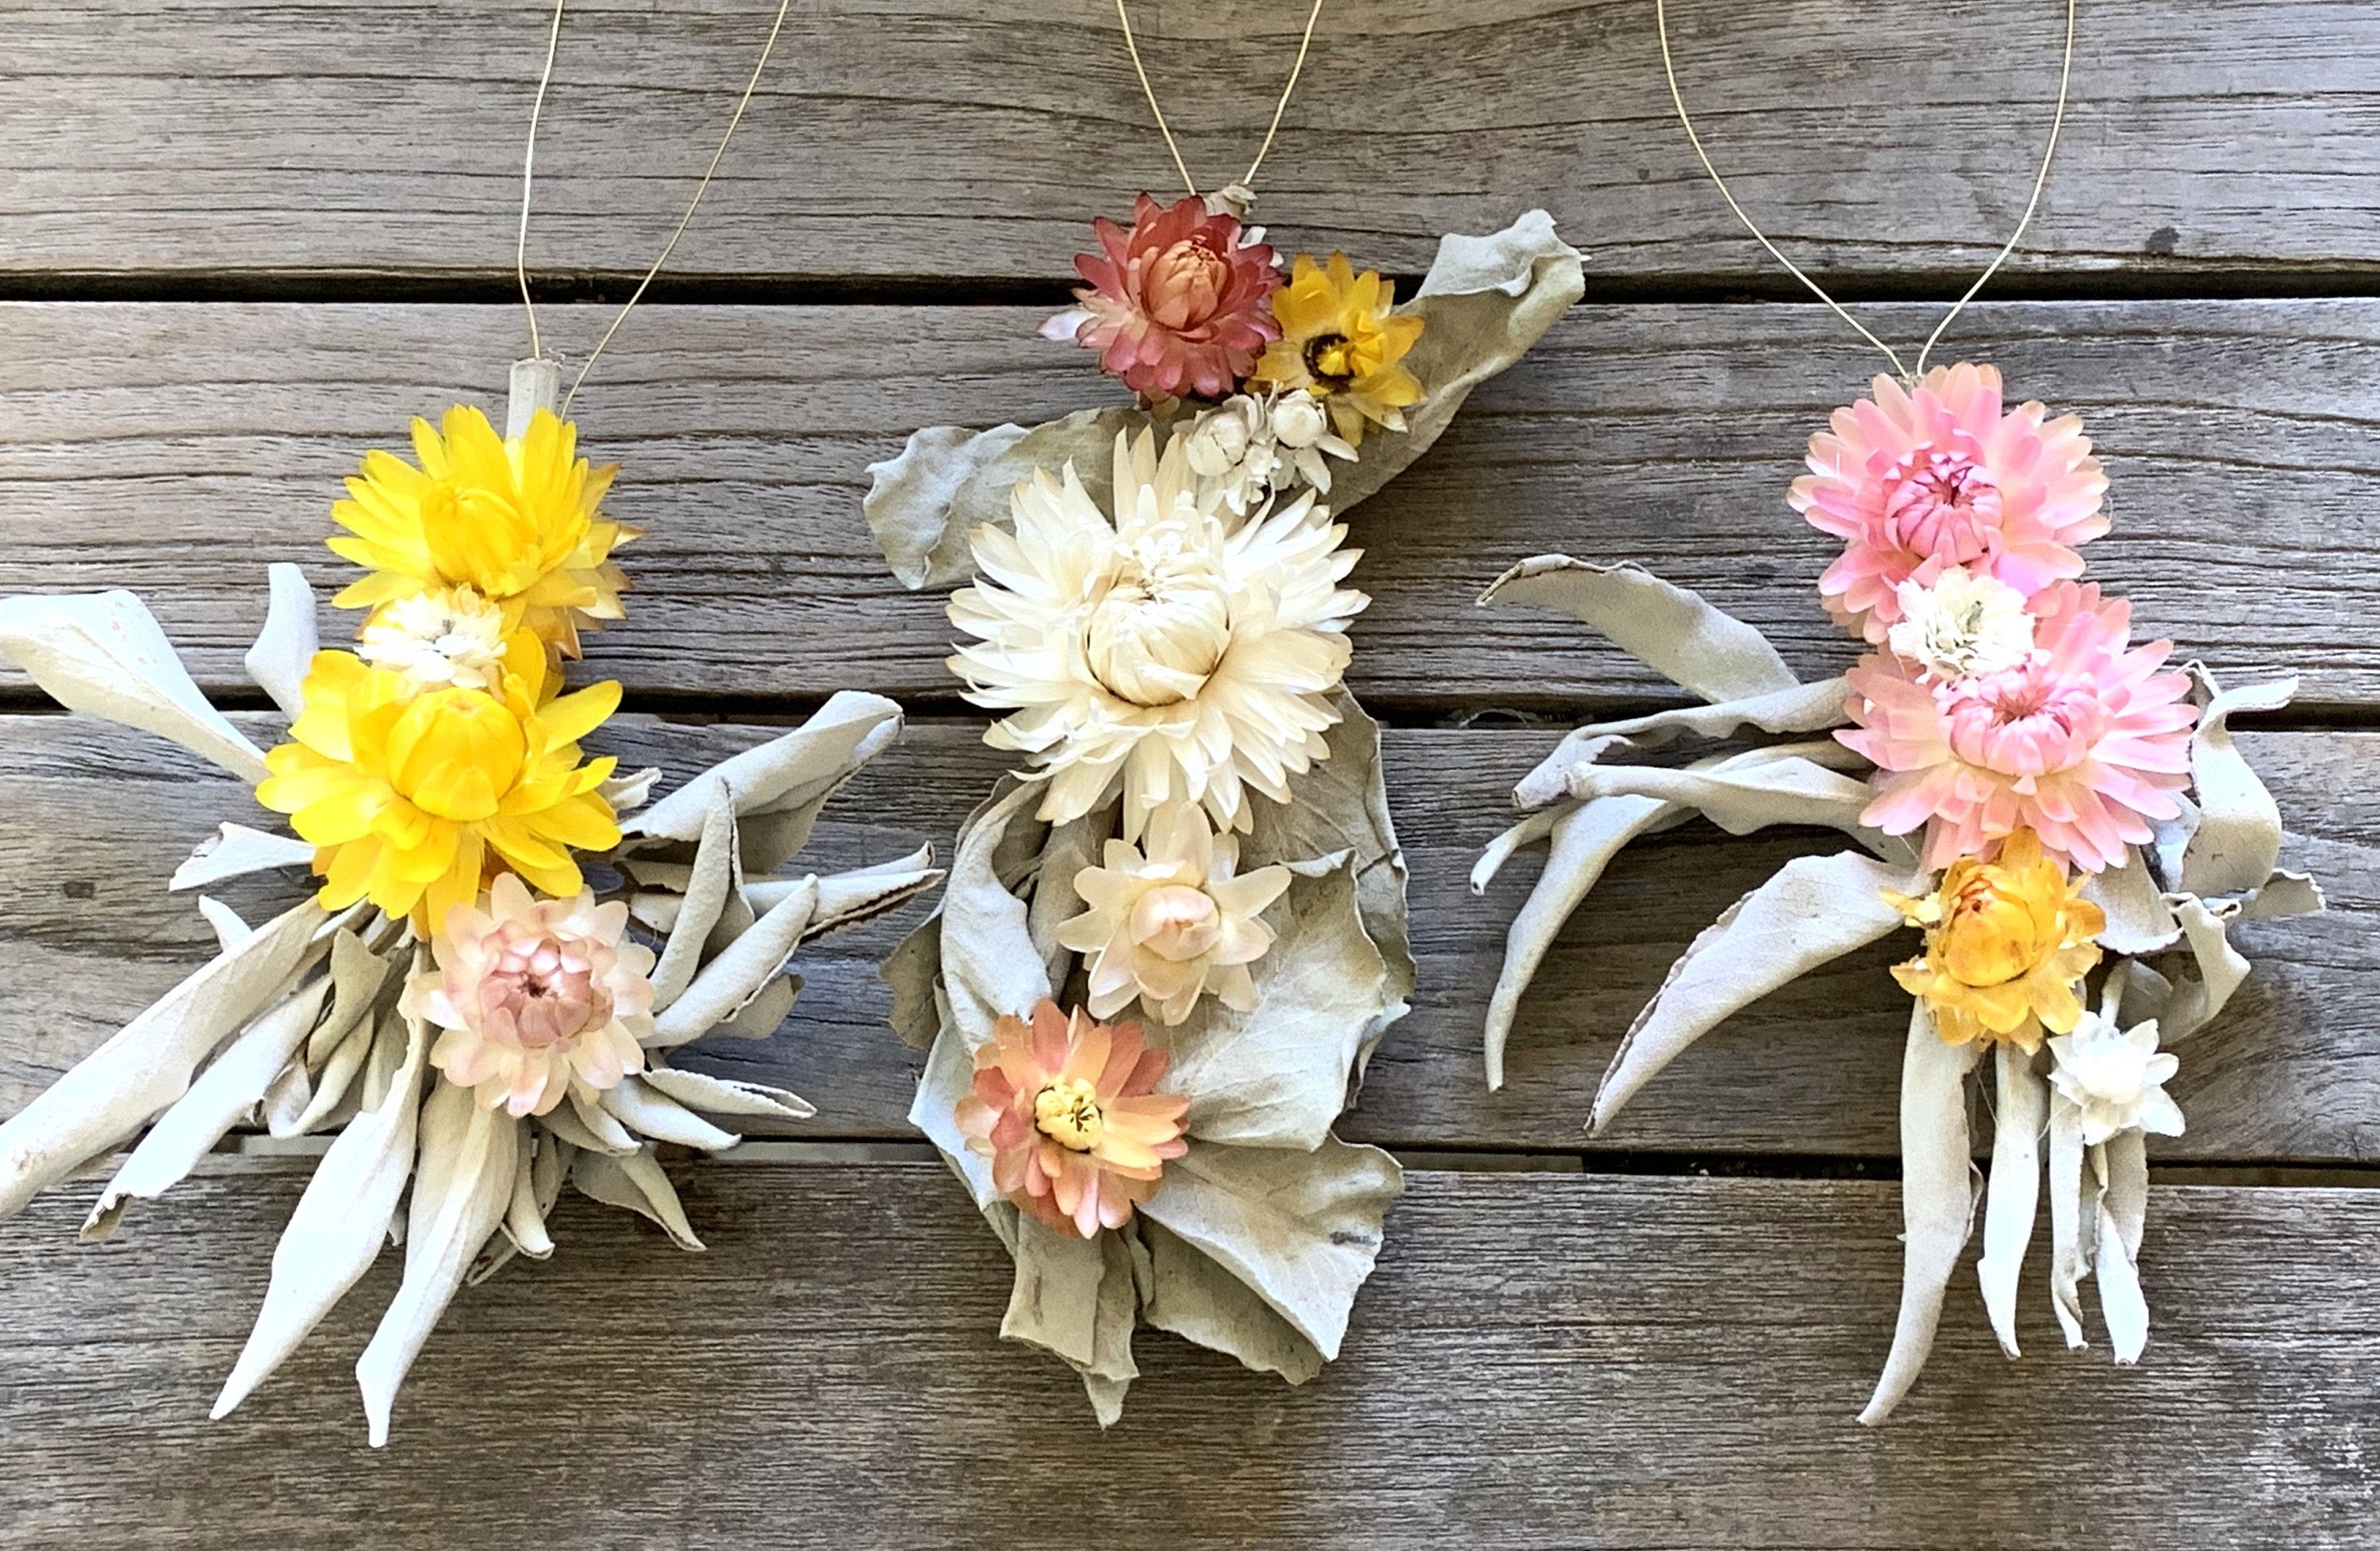 Sage wand ornaments w/ flowers, botanical ornaments, dried flower ornaments